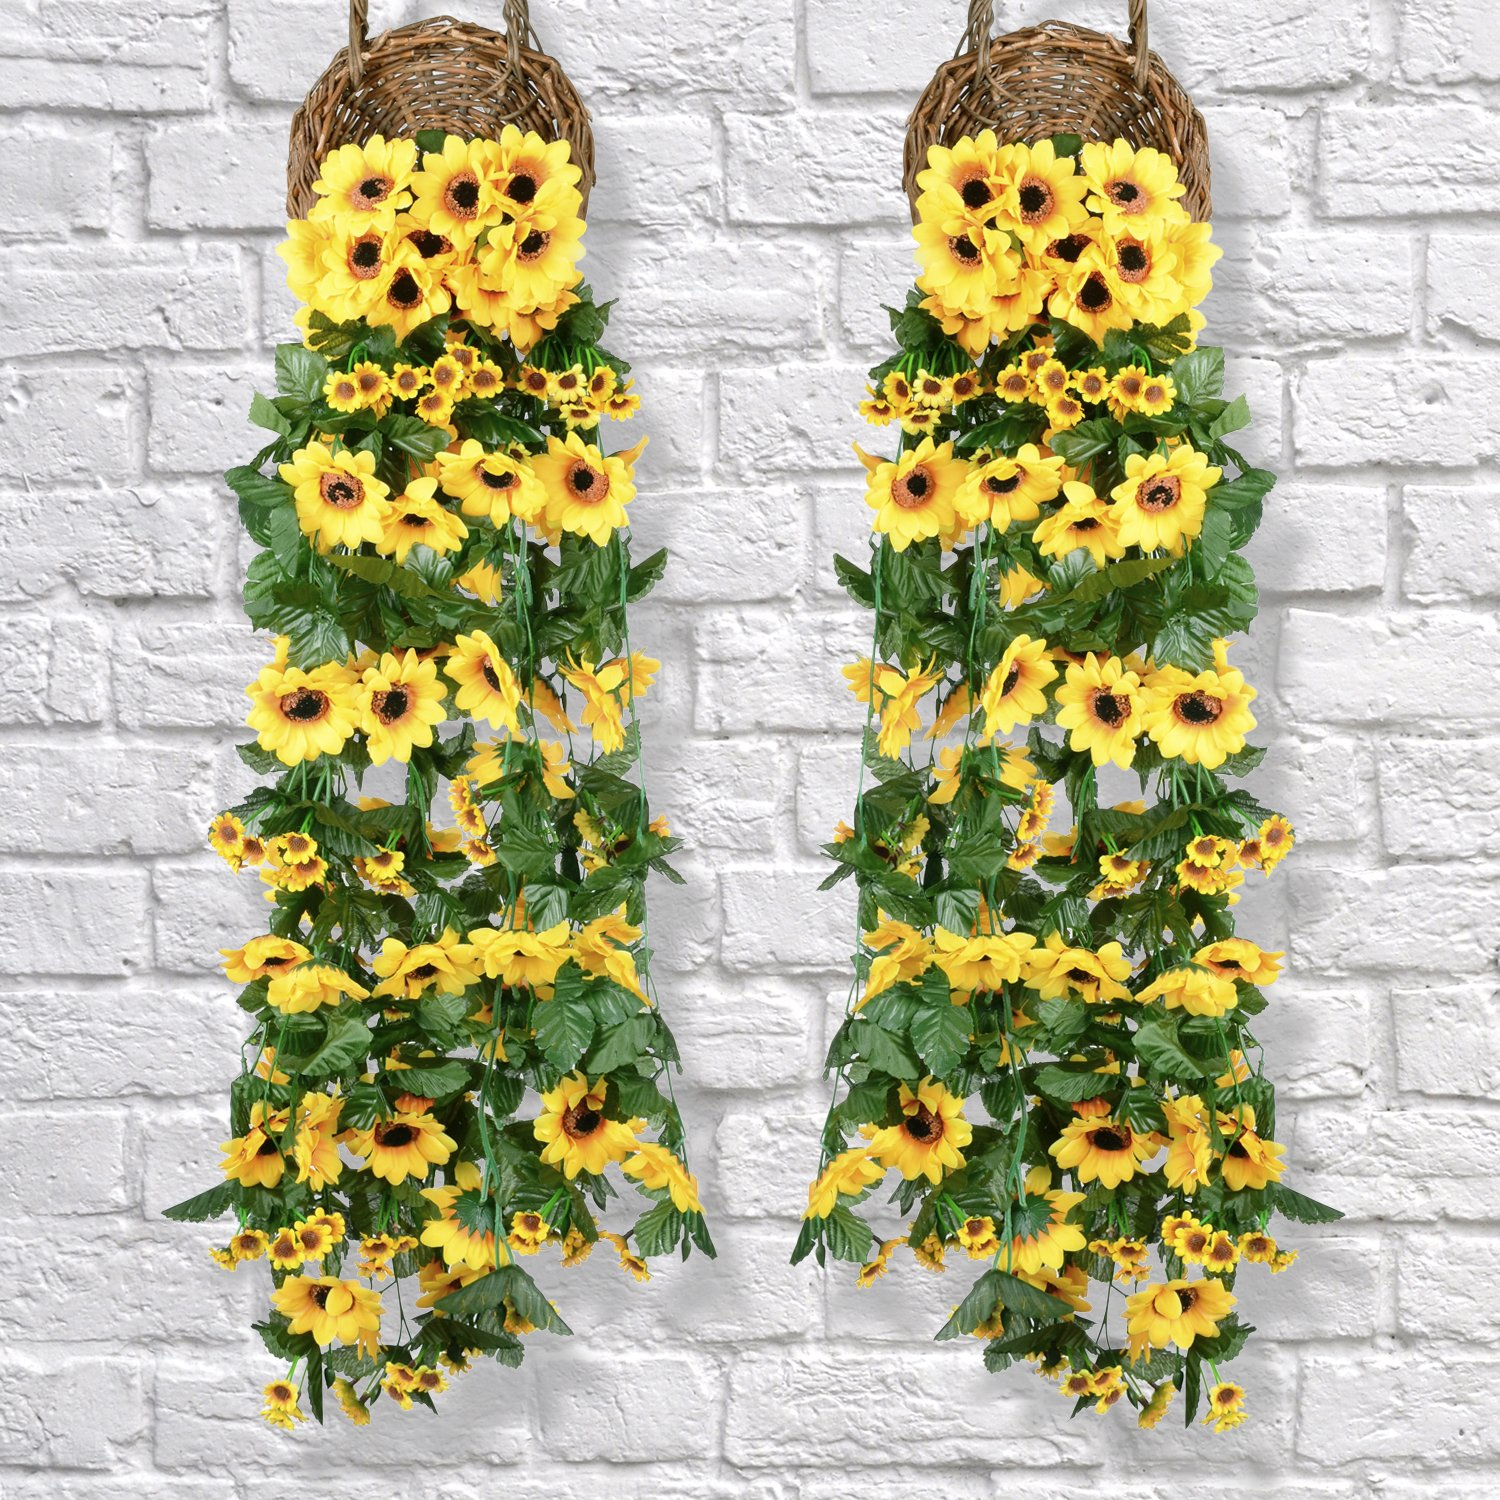 Allstate Floral Craft Silk Sunflower Flower Garland In Yellow6